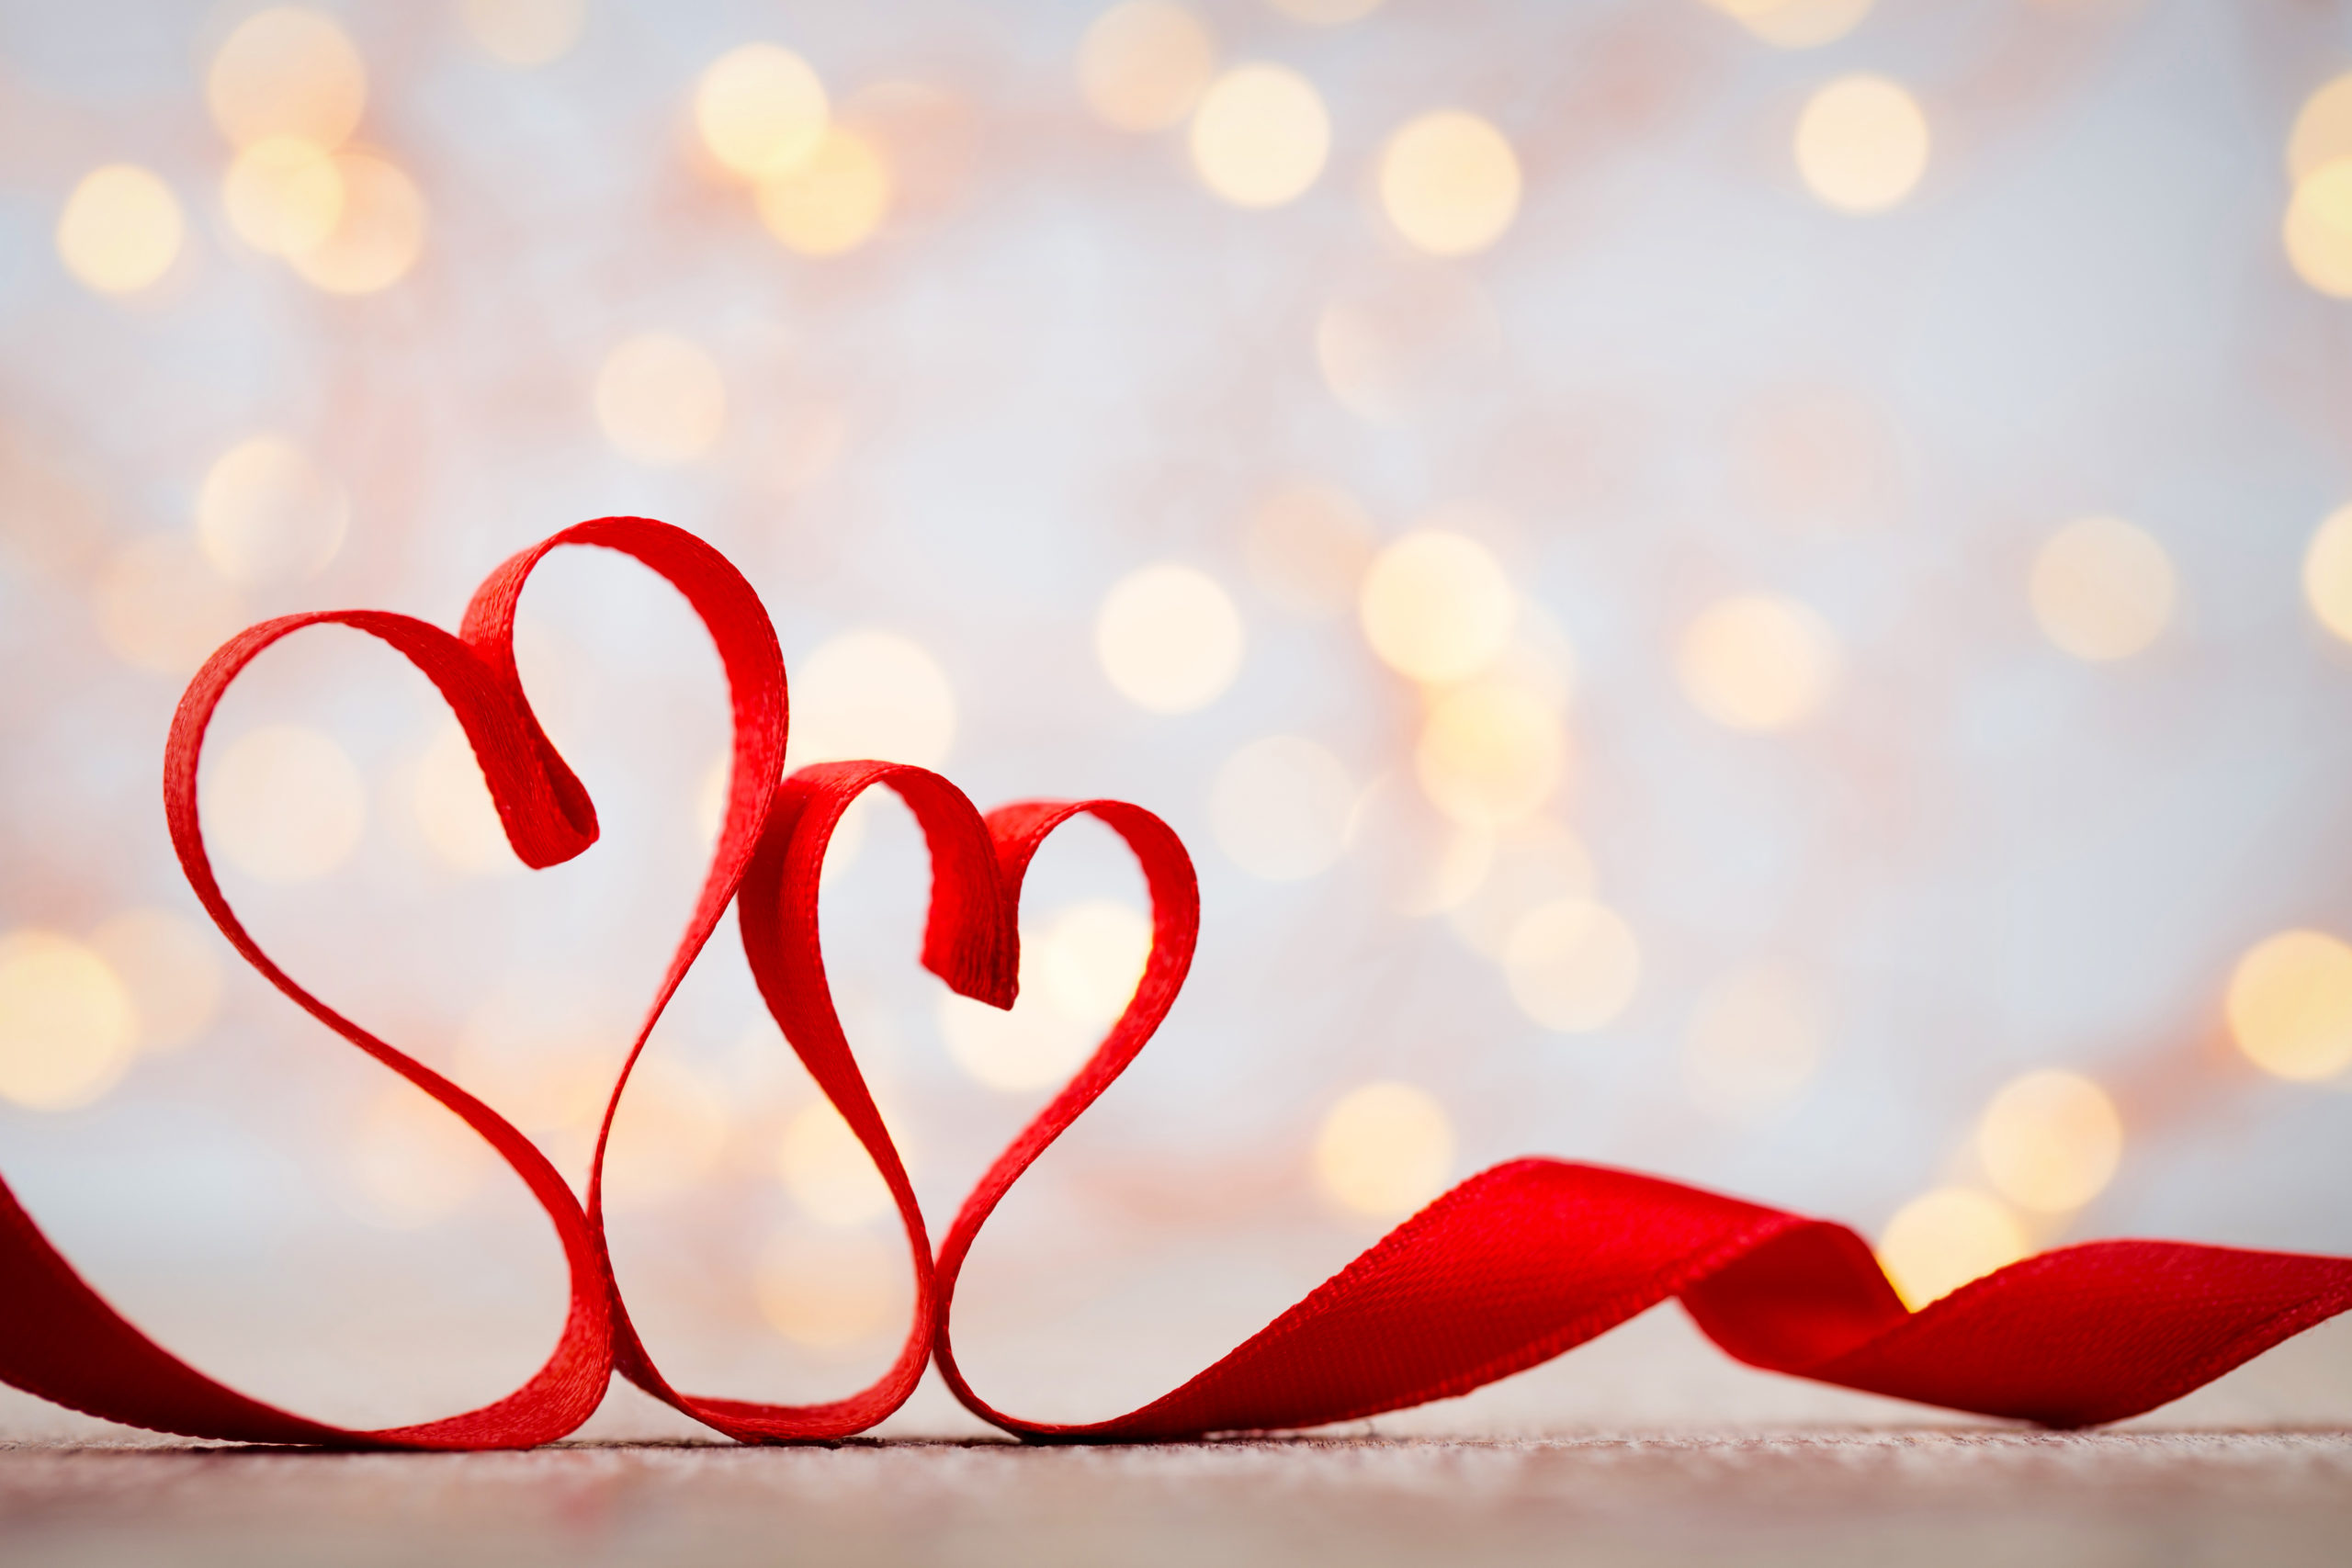 two-red-hearts-ribbon-valentines-day-570268582